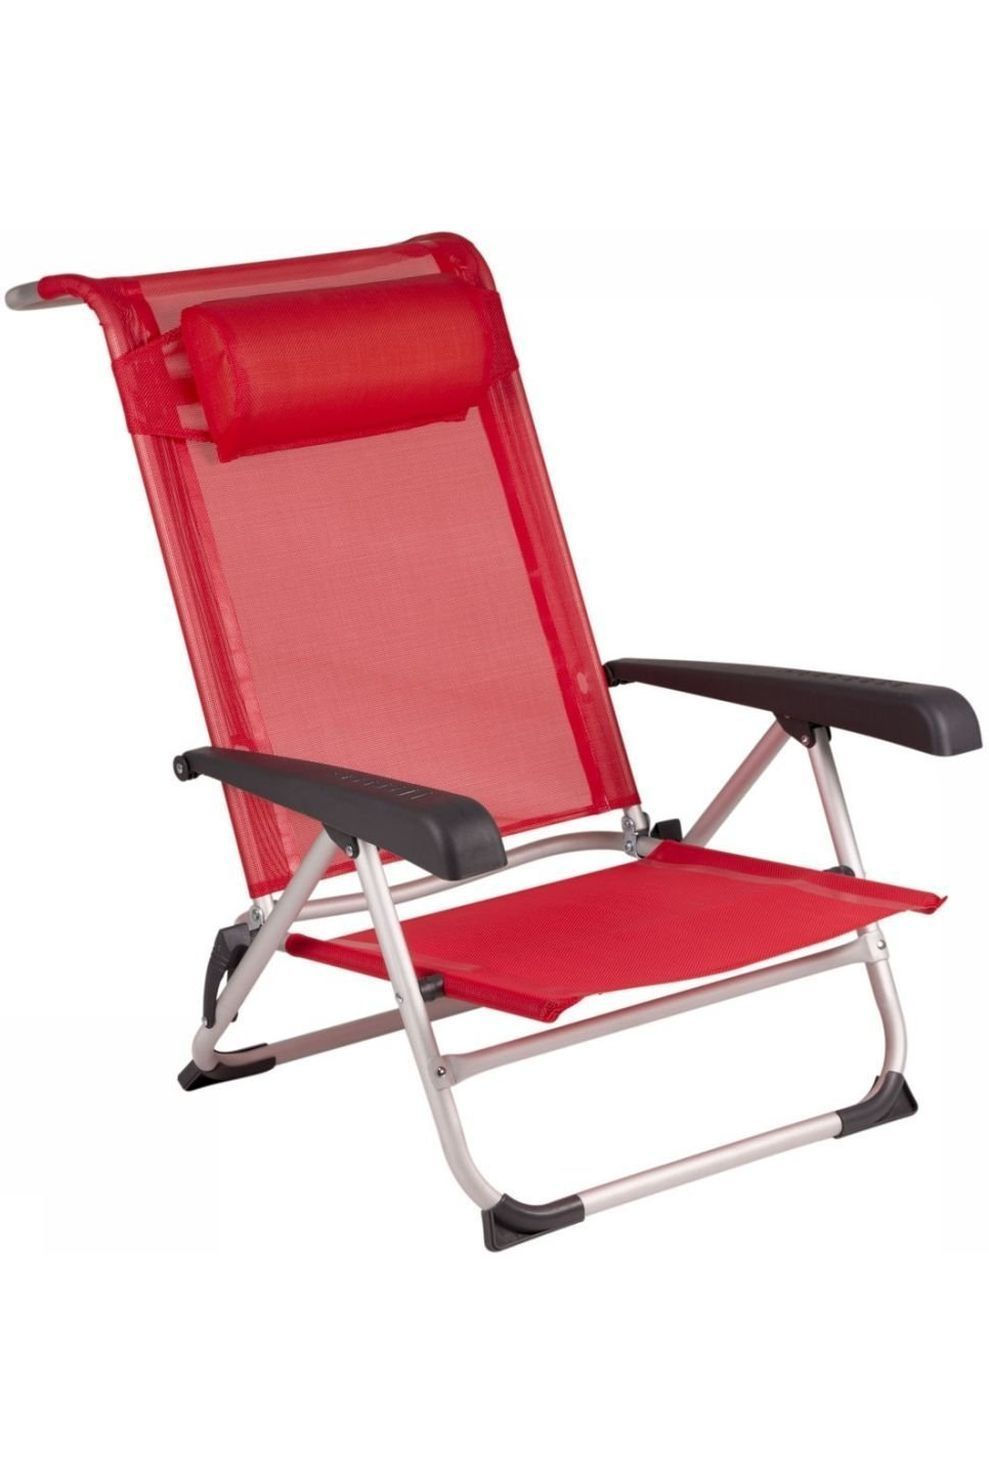 Red Mountain Relaxstoel Deluxe Saint-Tropez - Rood